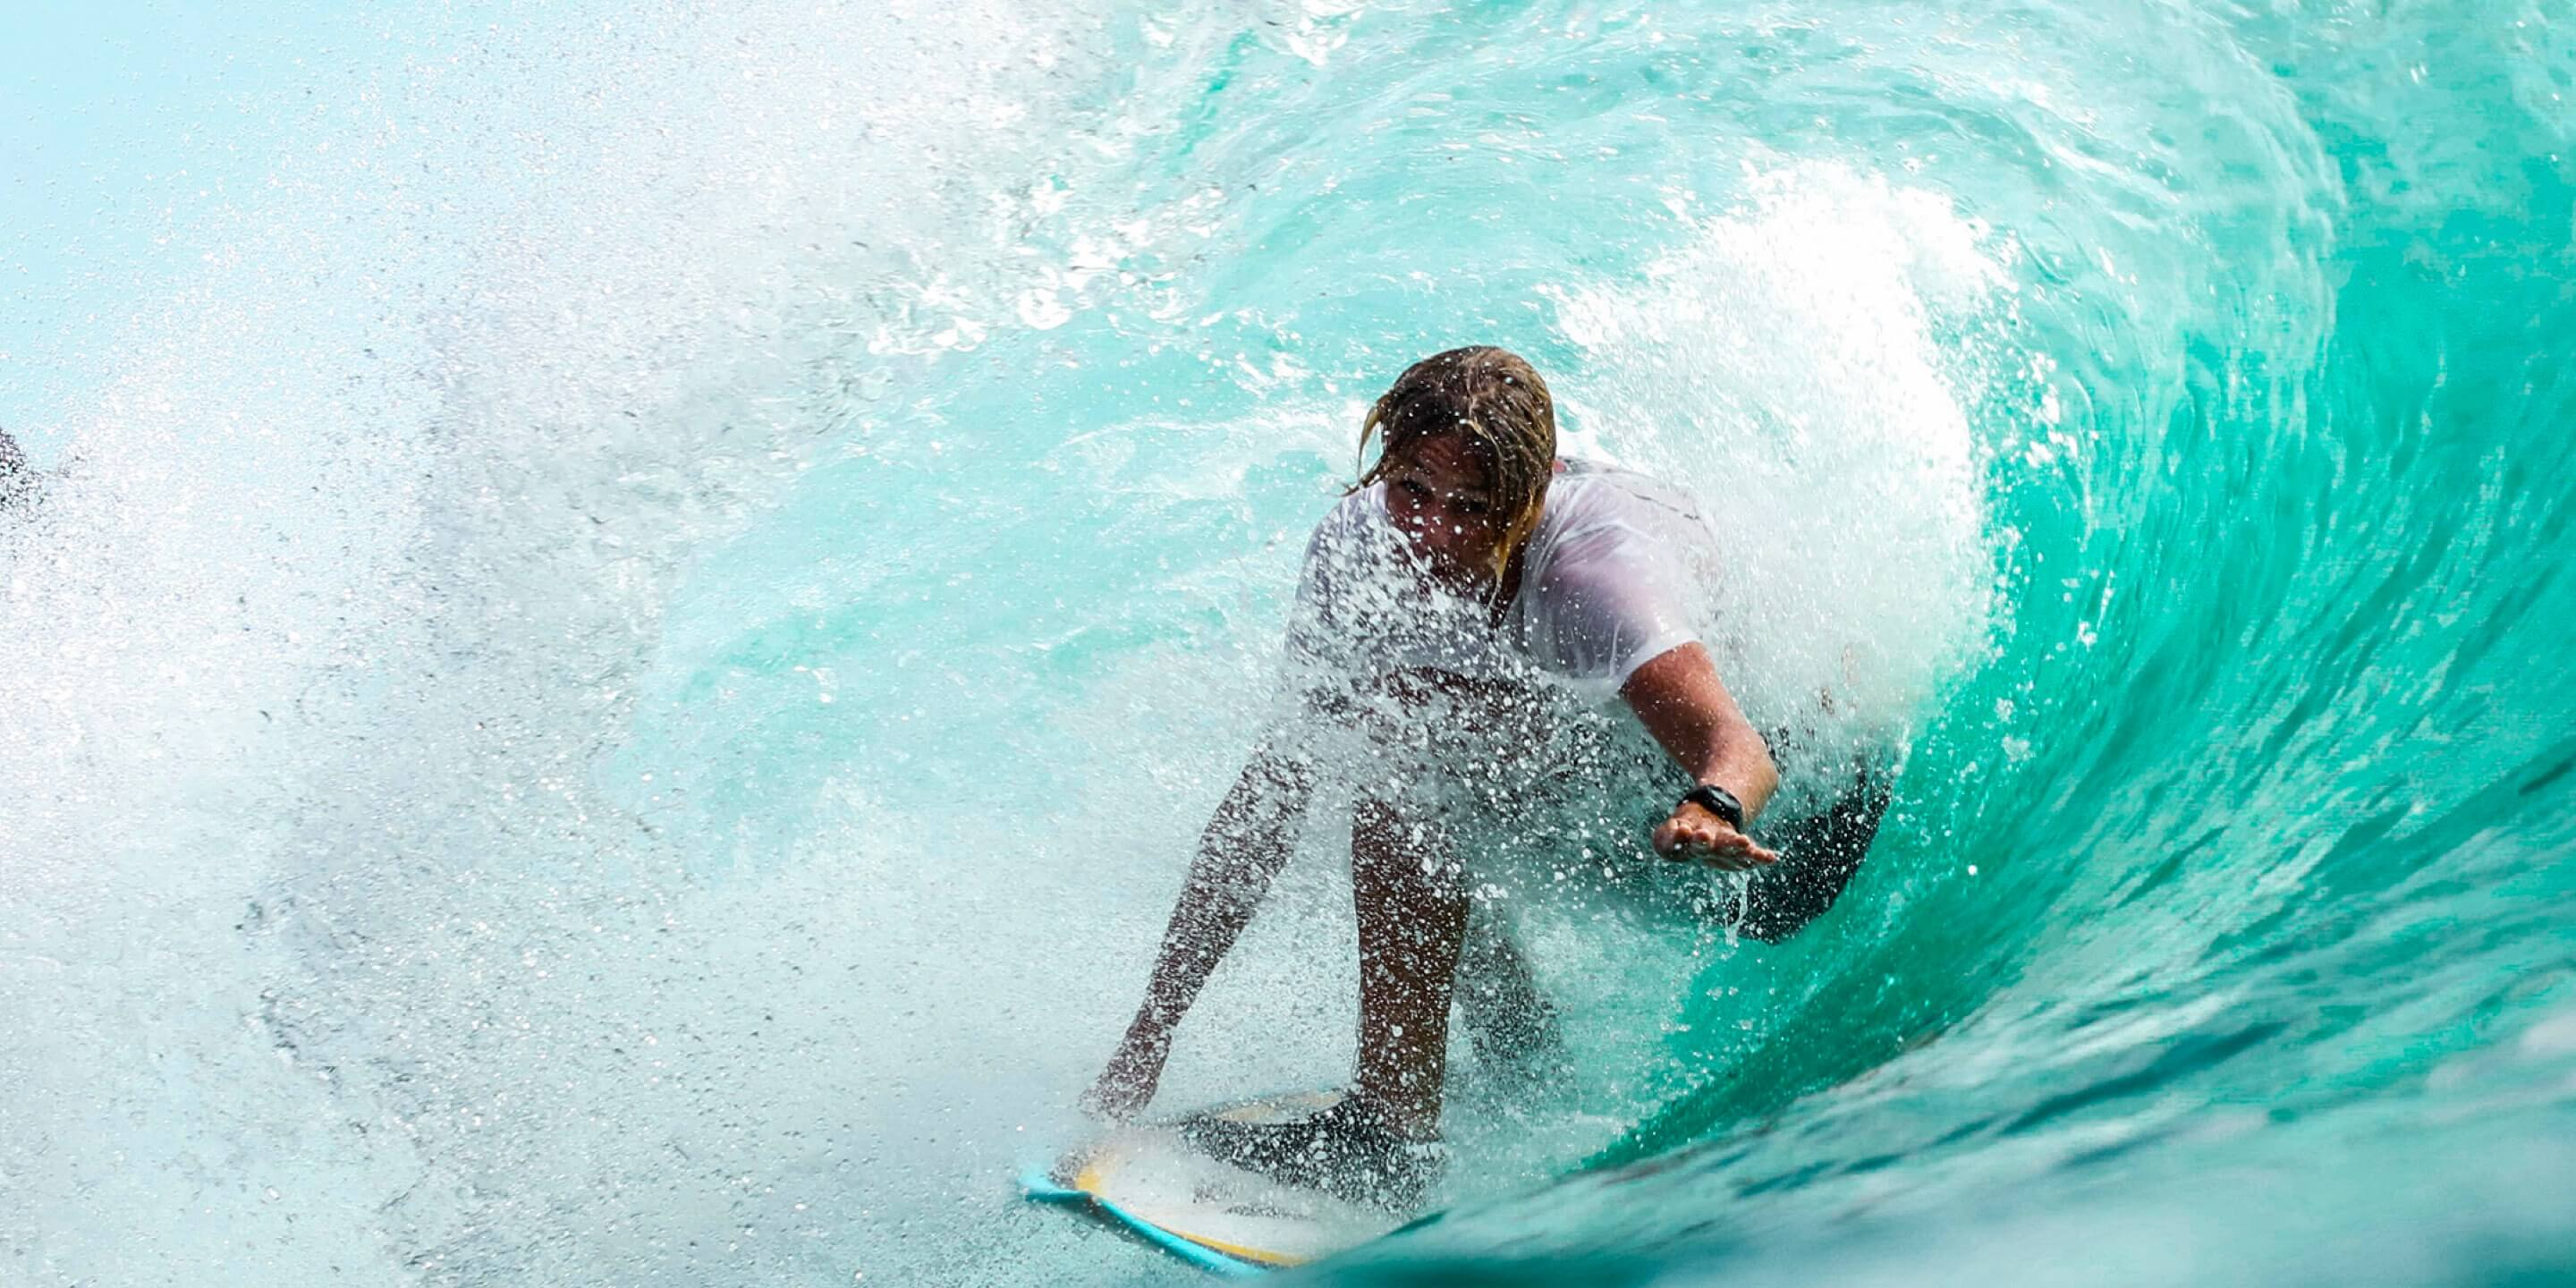 man shreds wave on surfboard